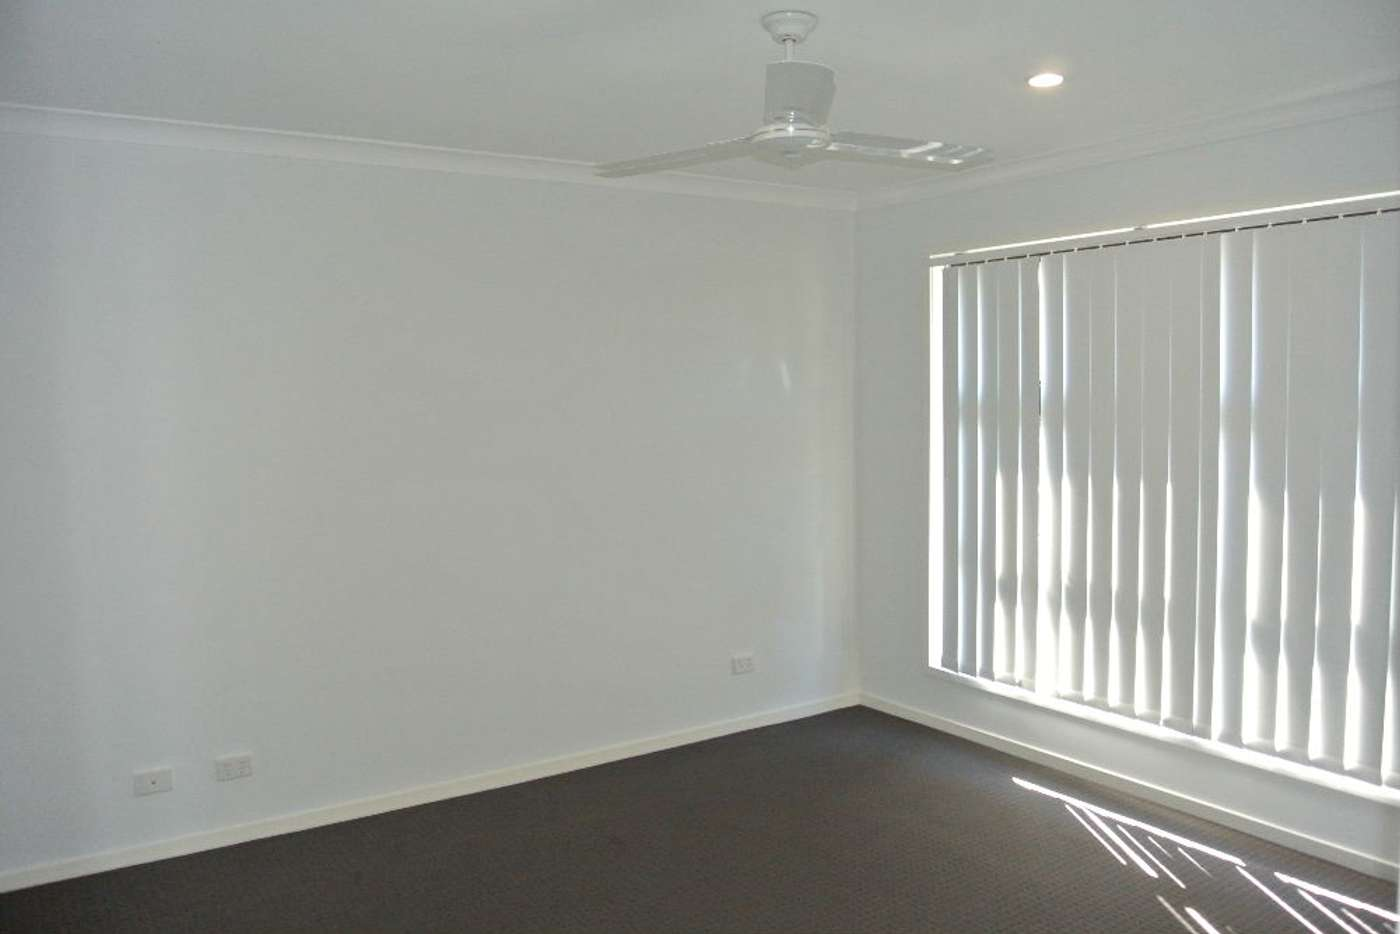 Sixth view of Homely house listing, 27 Ravensbourne Circuit, Waterford QLD 4133